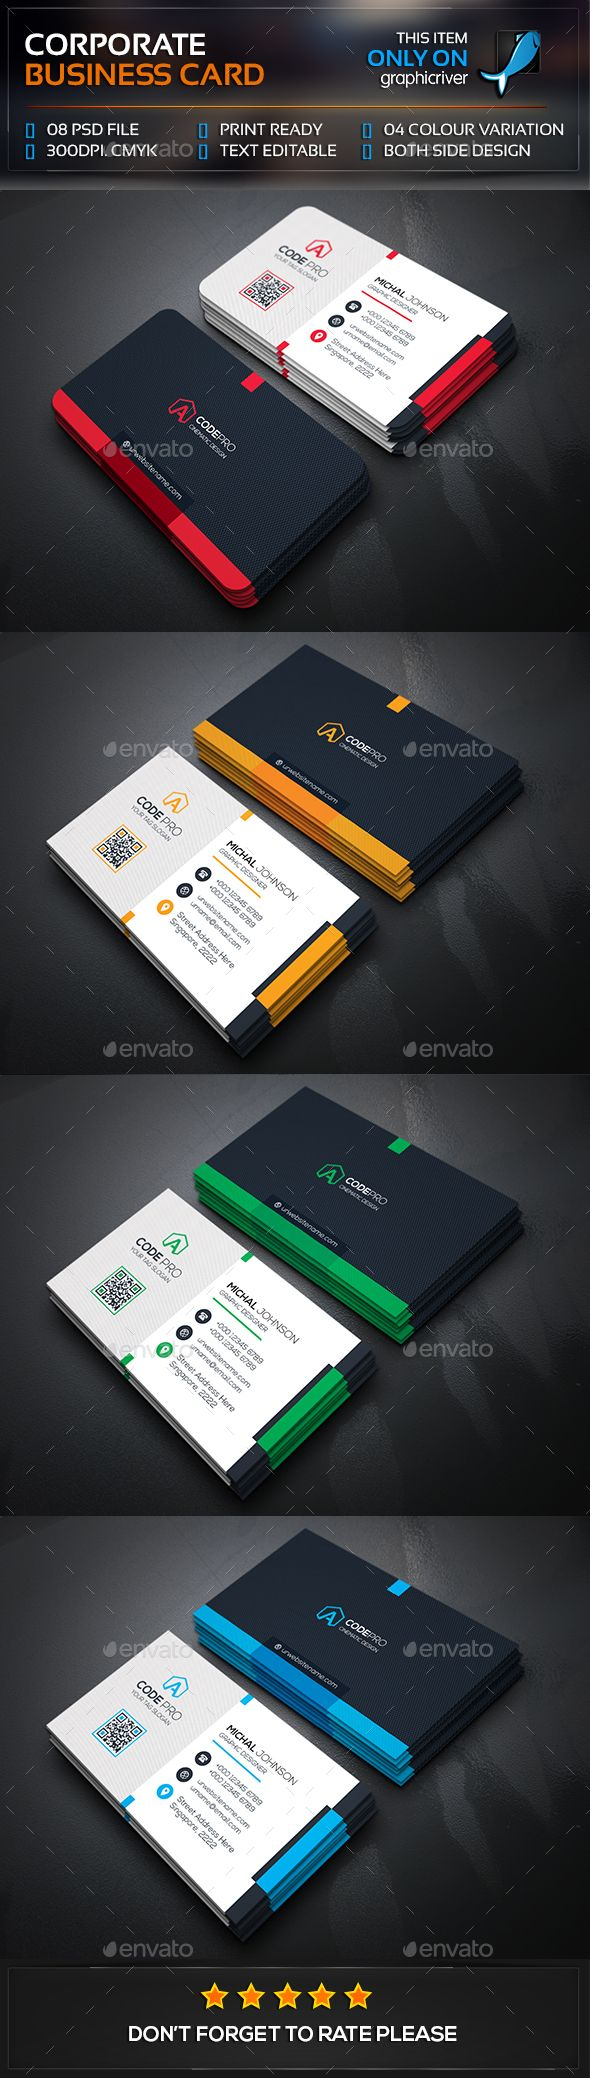 Best 25 business card templates ideas on pinterest business mega corporate business card template psd visitcard design download http reheart Images